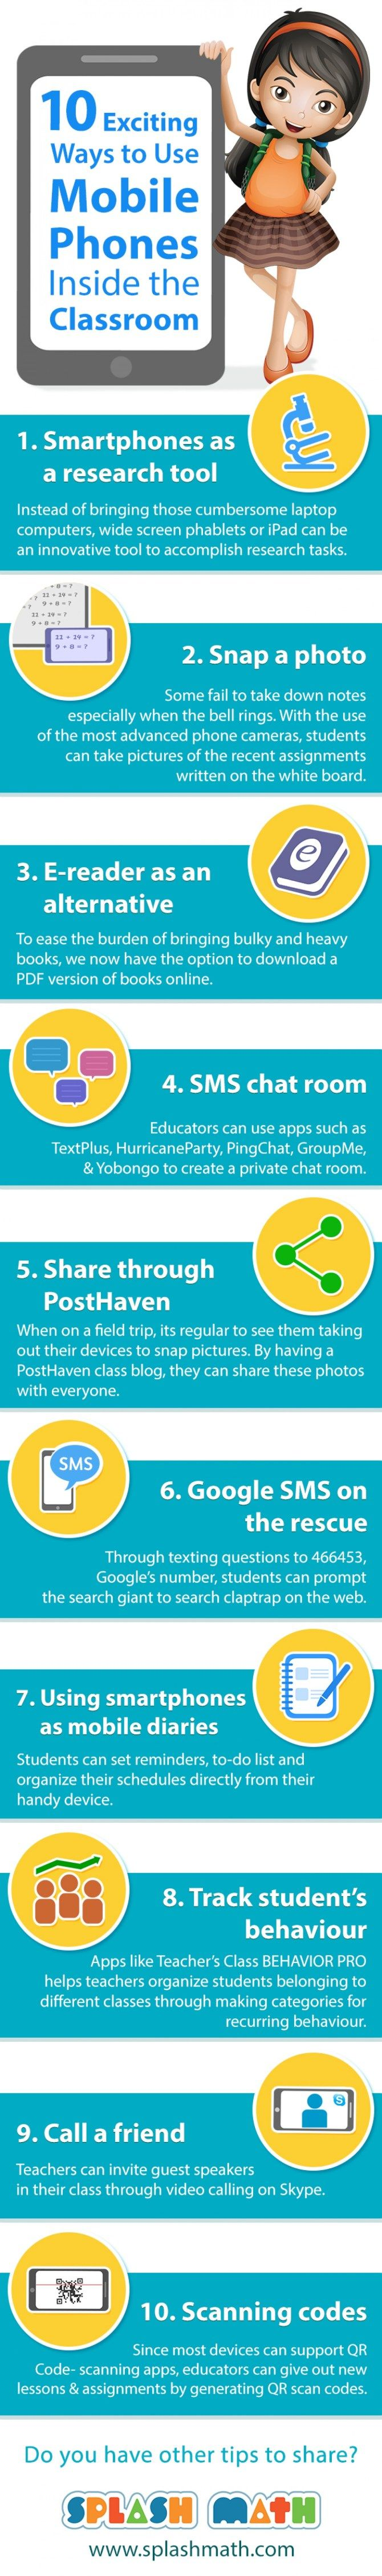 10 Exciting Ways to Use Mobile Phones Inside the Classroom